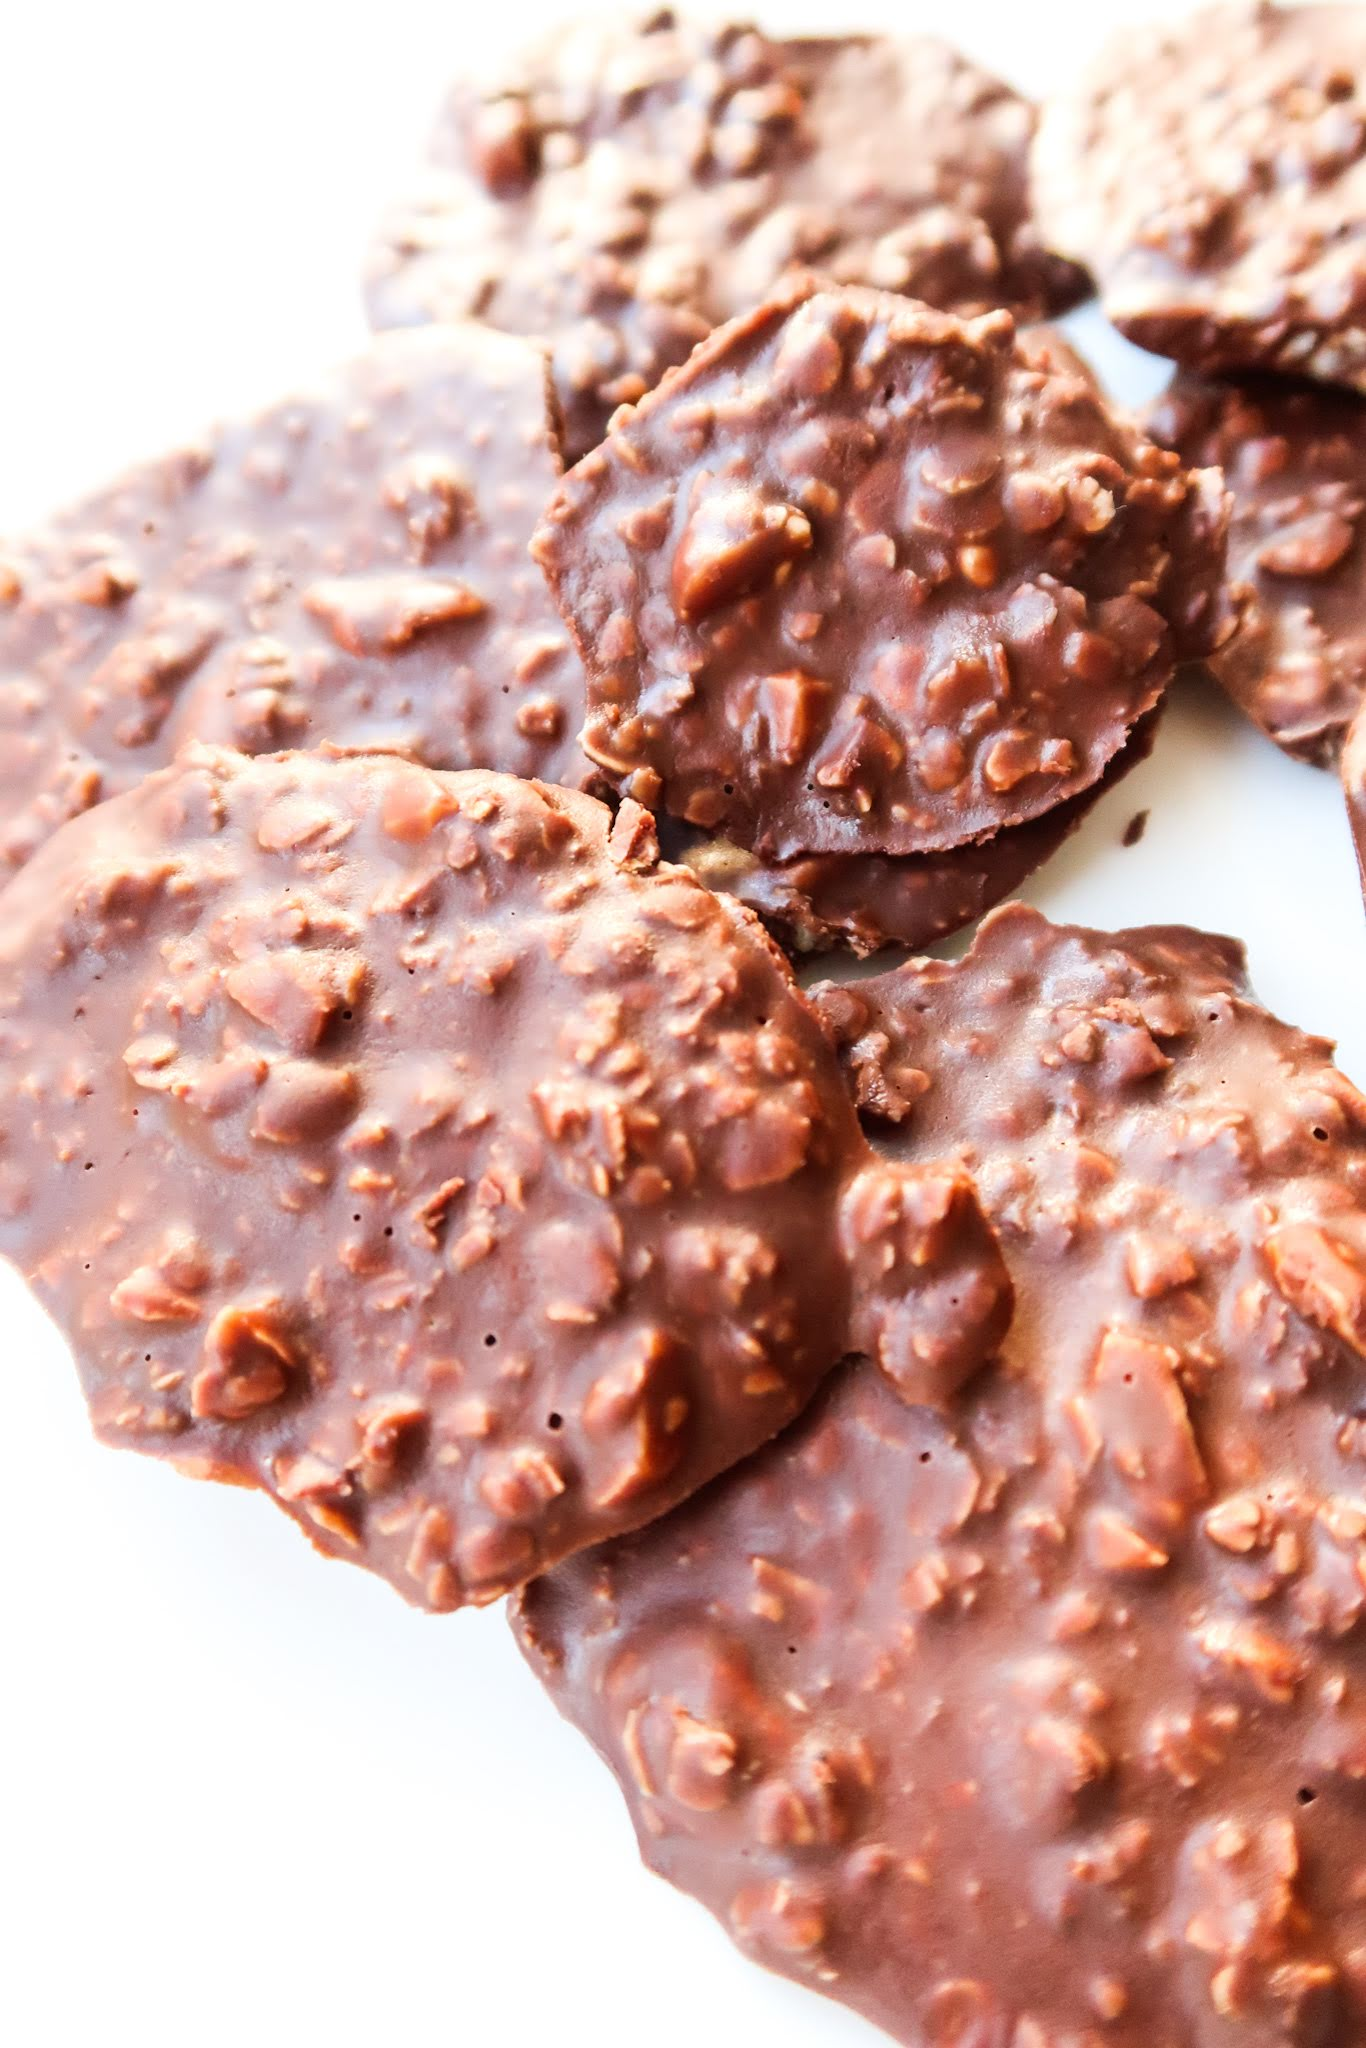 10-Minute Easy No-Bake Healthy Chocolate Cookies! Meal prep these healthy no-bake cookies for the week ahead - they are the perfect healthy snack whenever you crave something sweet, especially when that something is chocolate and peanut butter. This is a clean eating dessert recipe that you can make without much planning - it's only 5 ingredients.